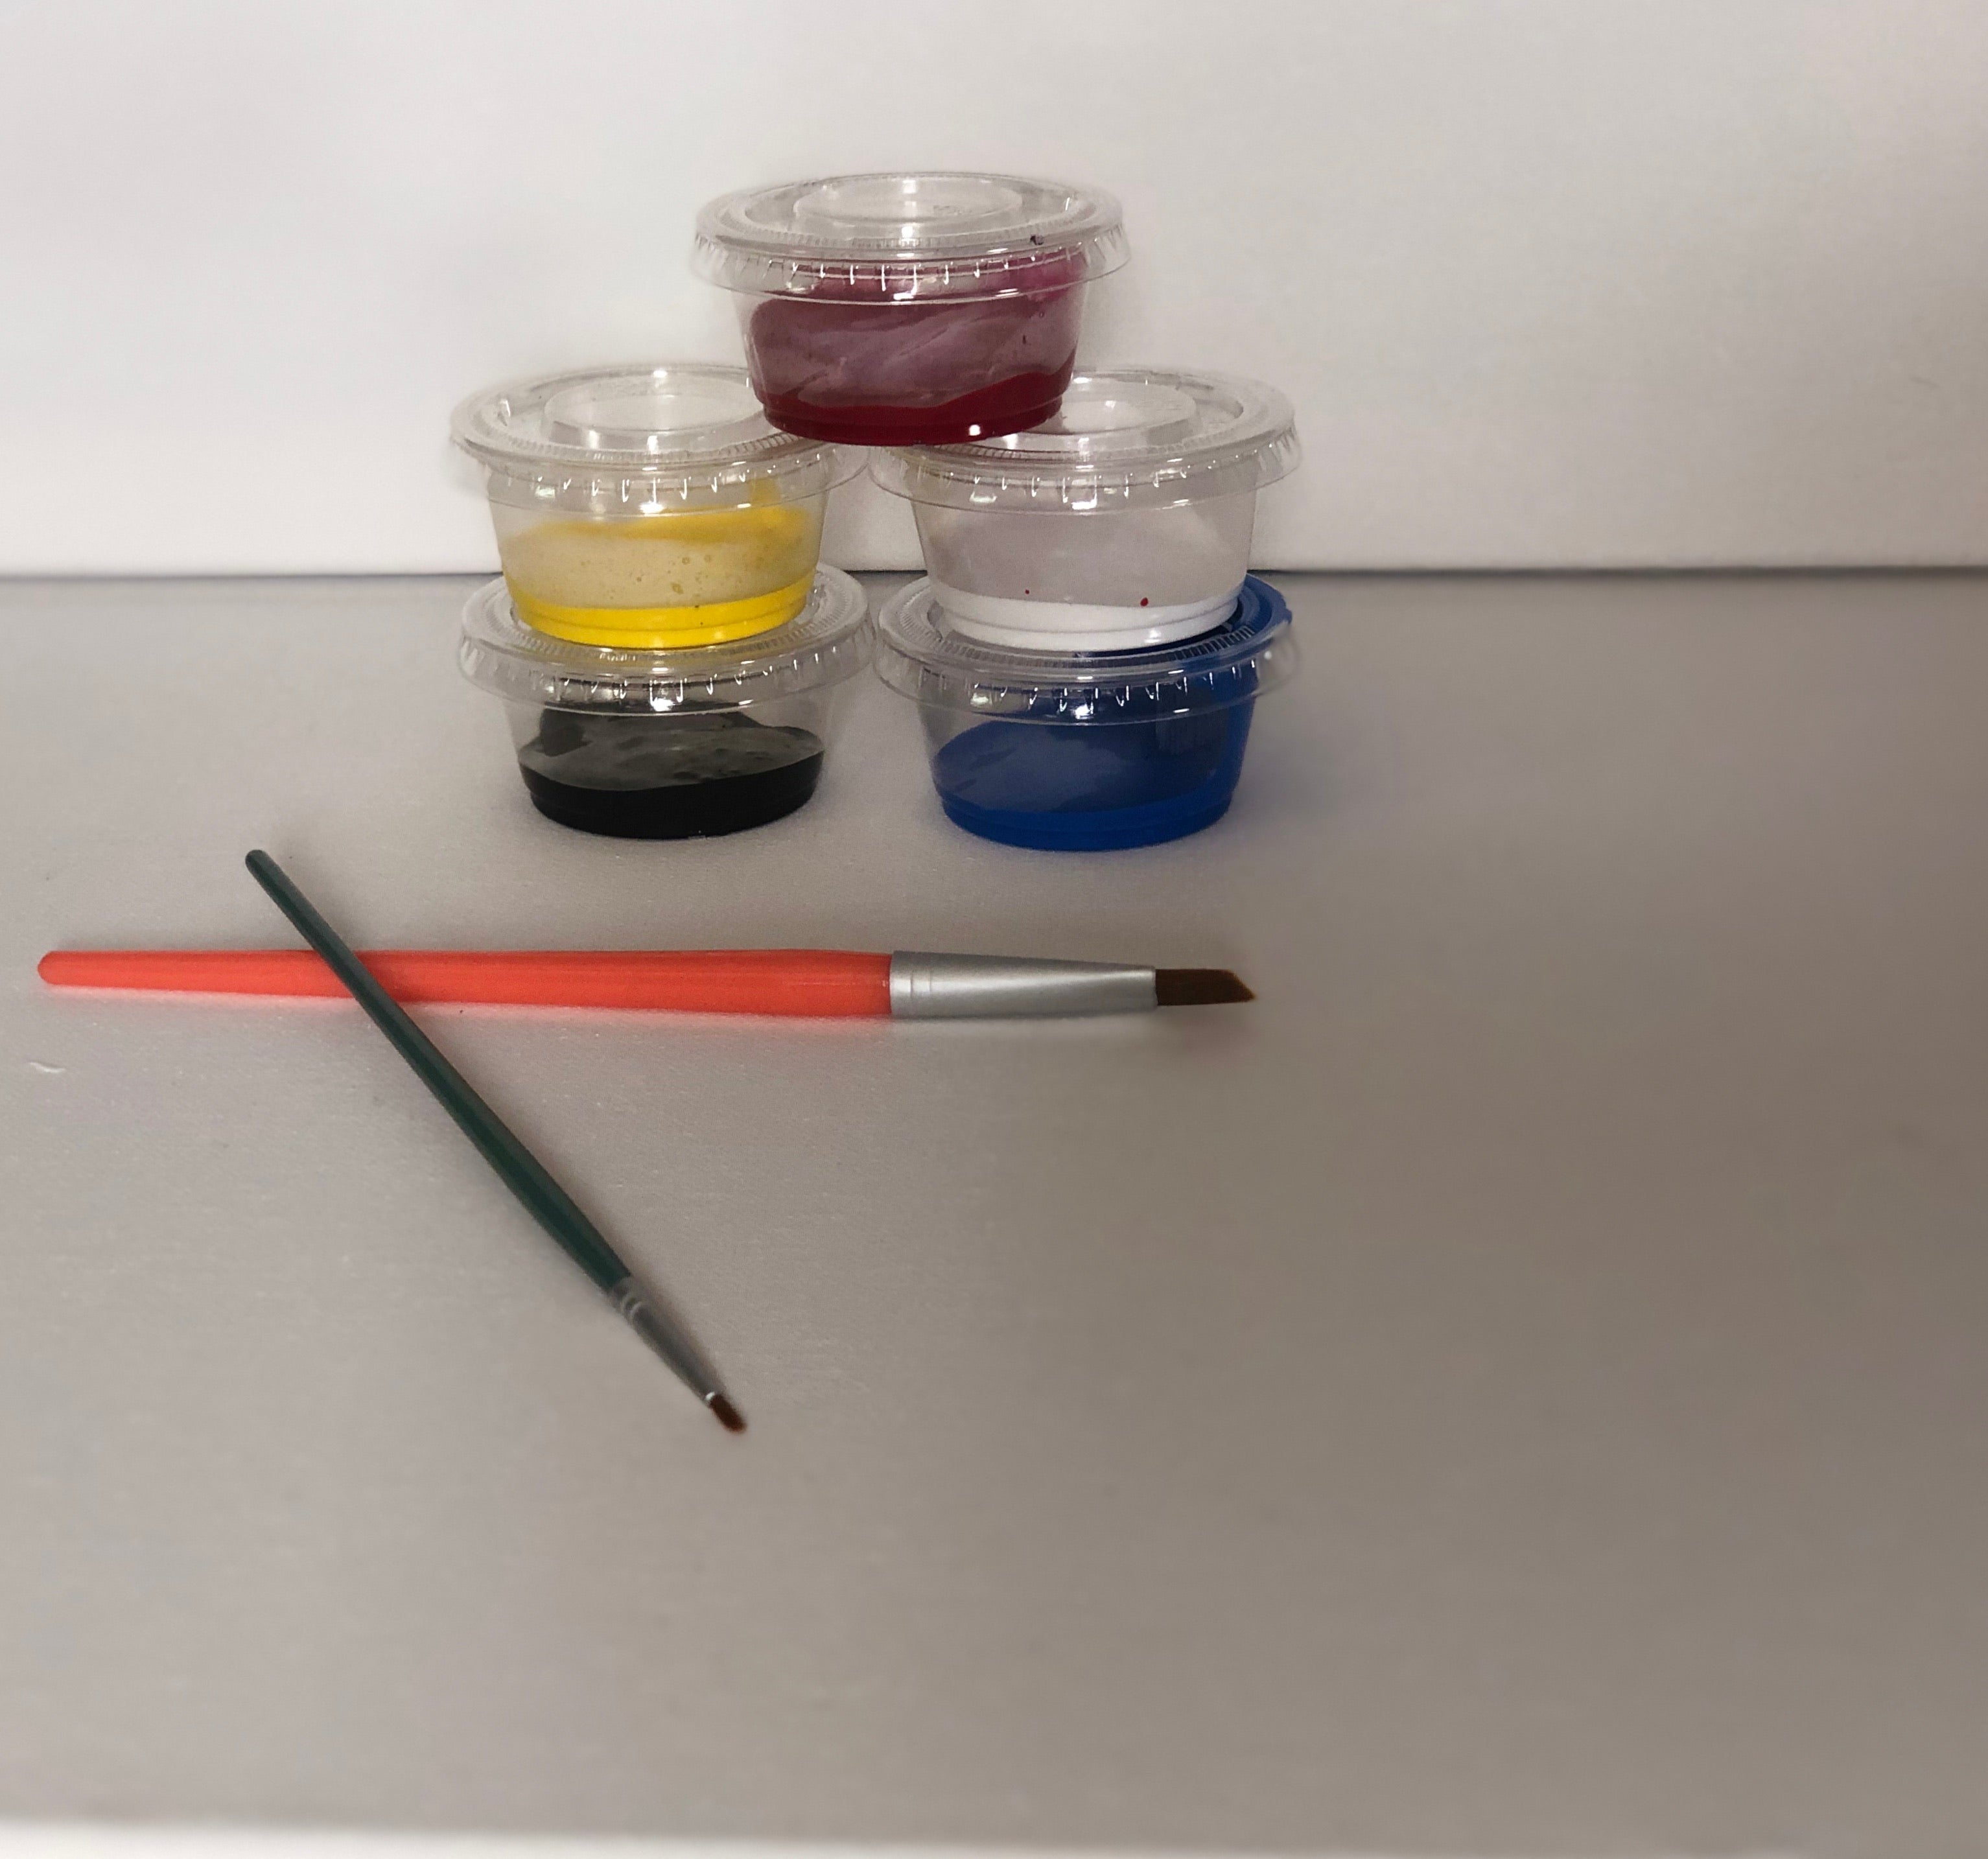 Gloss Enamel Paint & Brush Set for Wine Bottle Painting